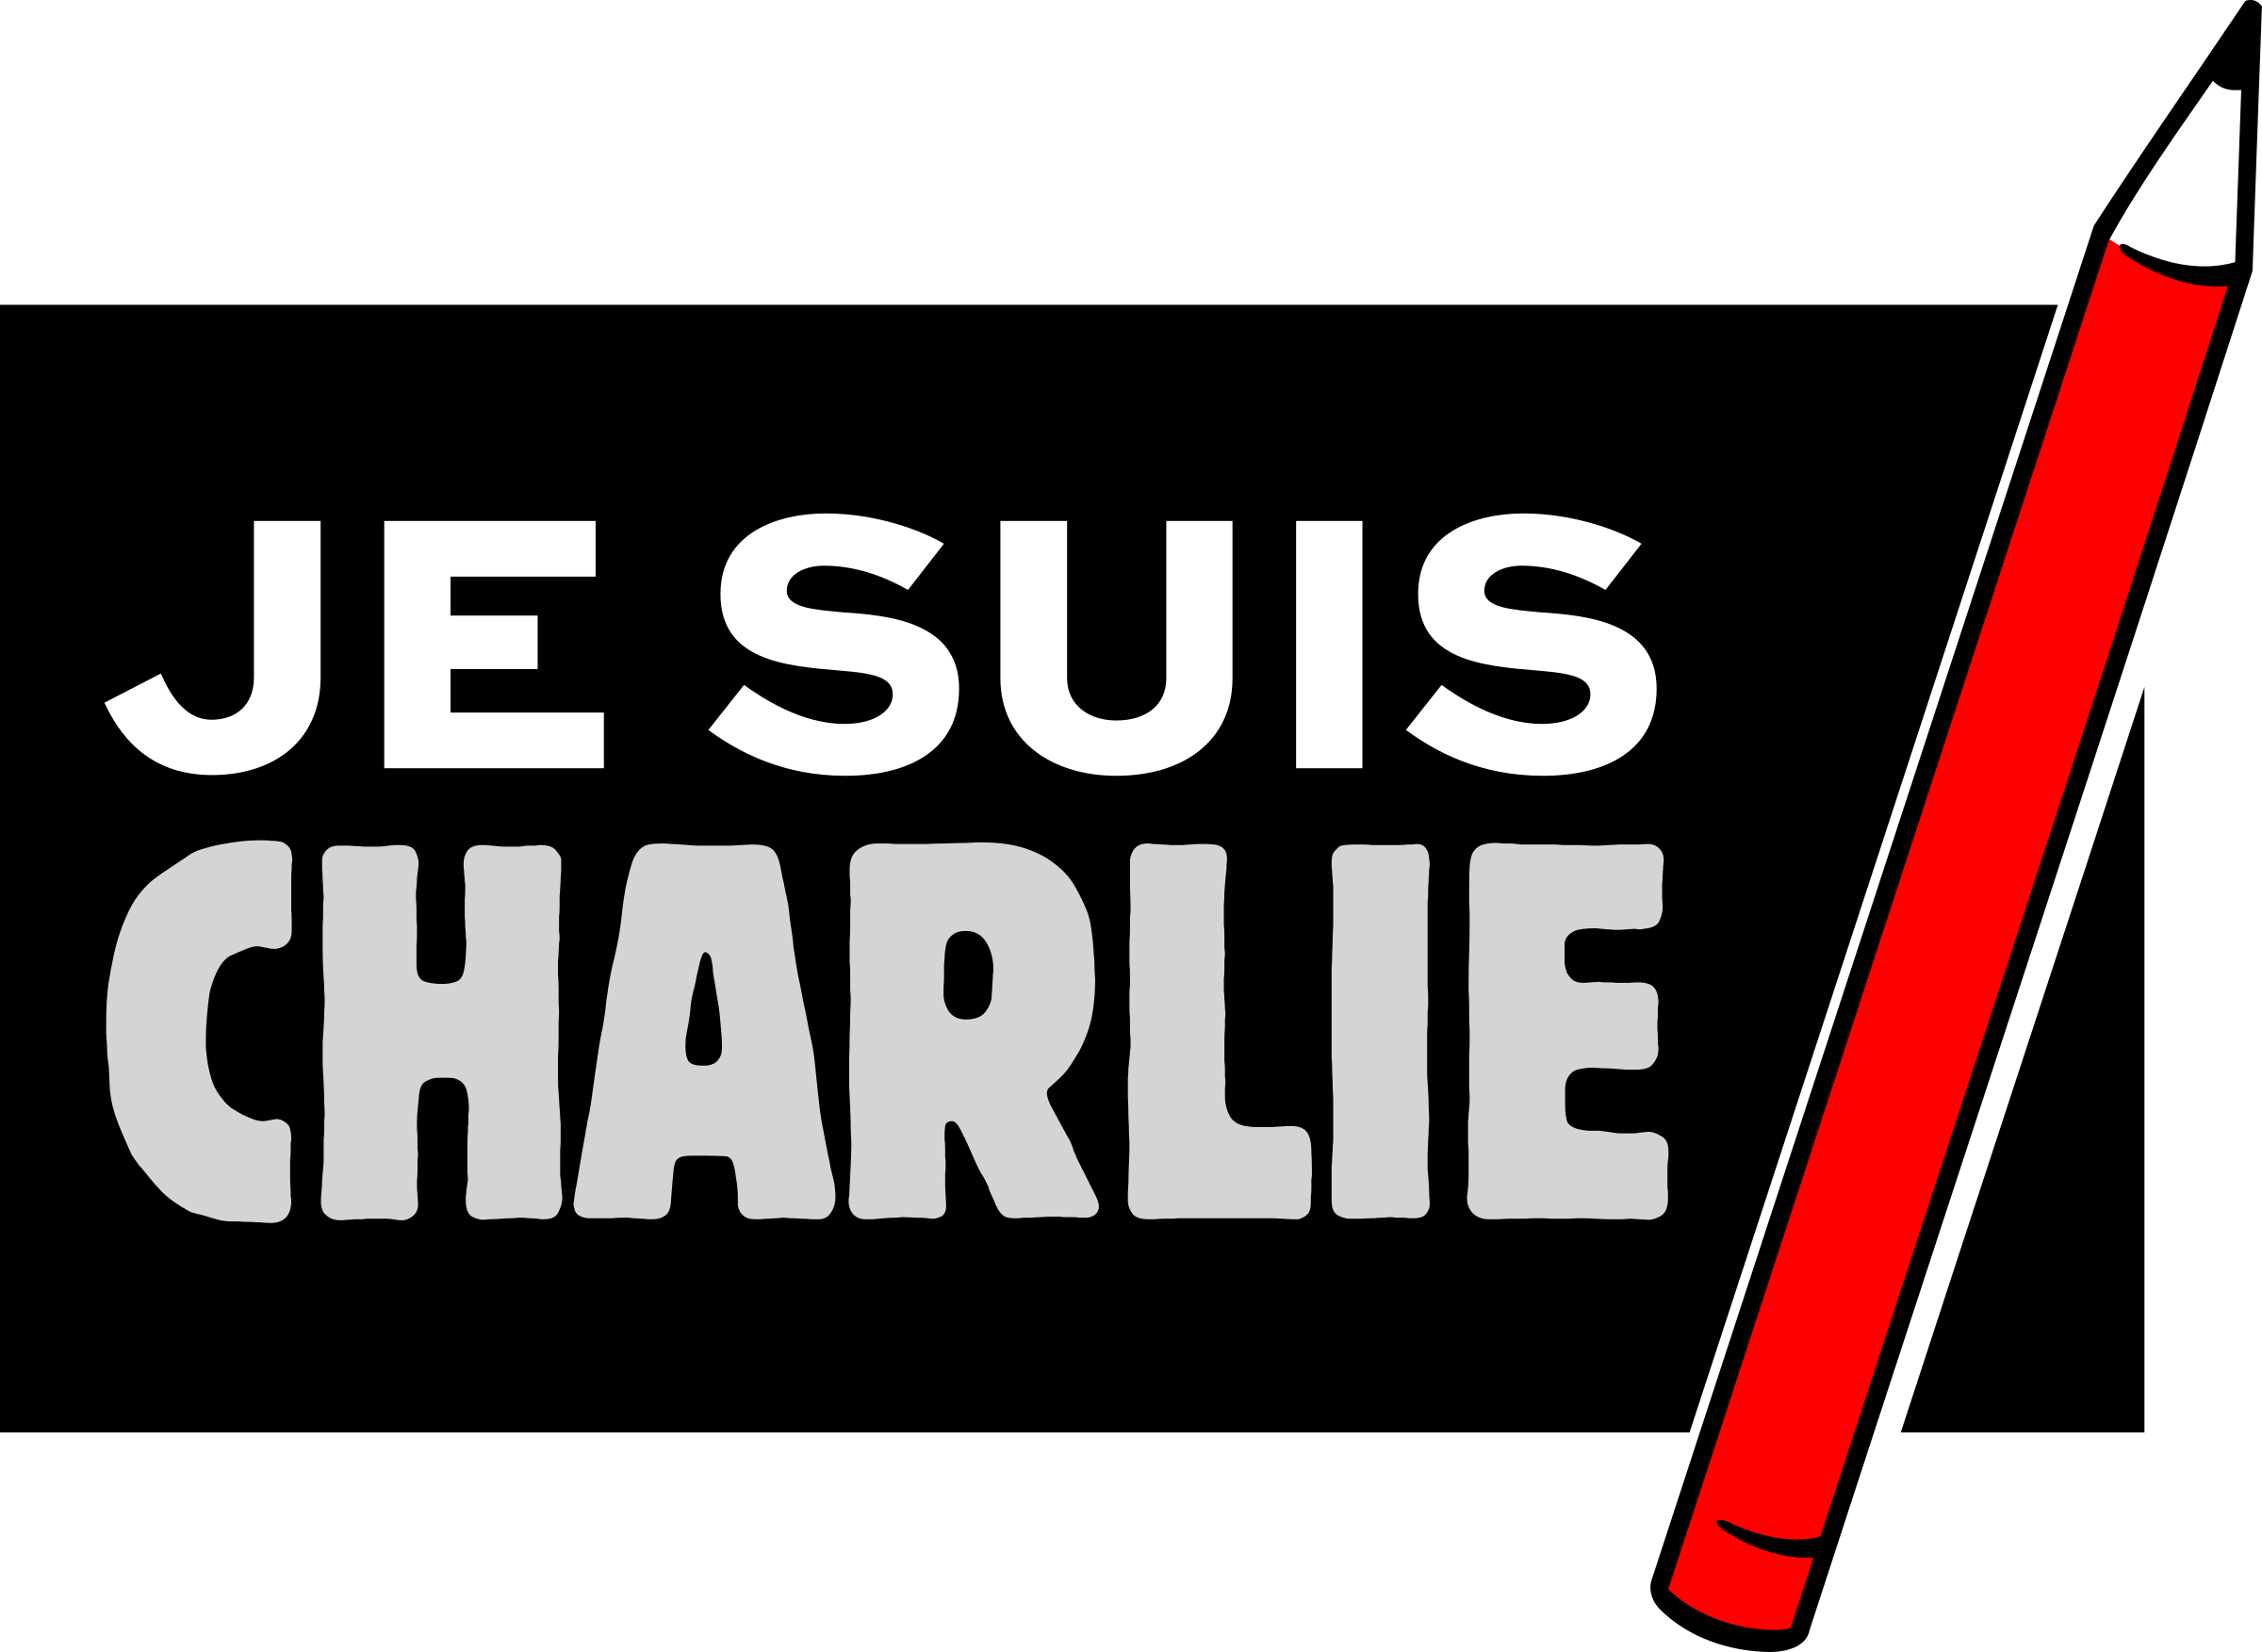 Je suis Charlie - Freedom of Press by mondspeer